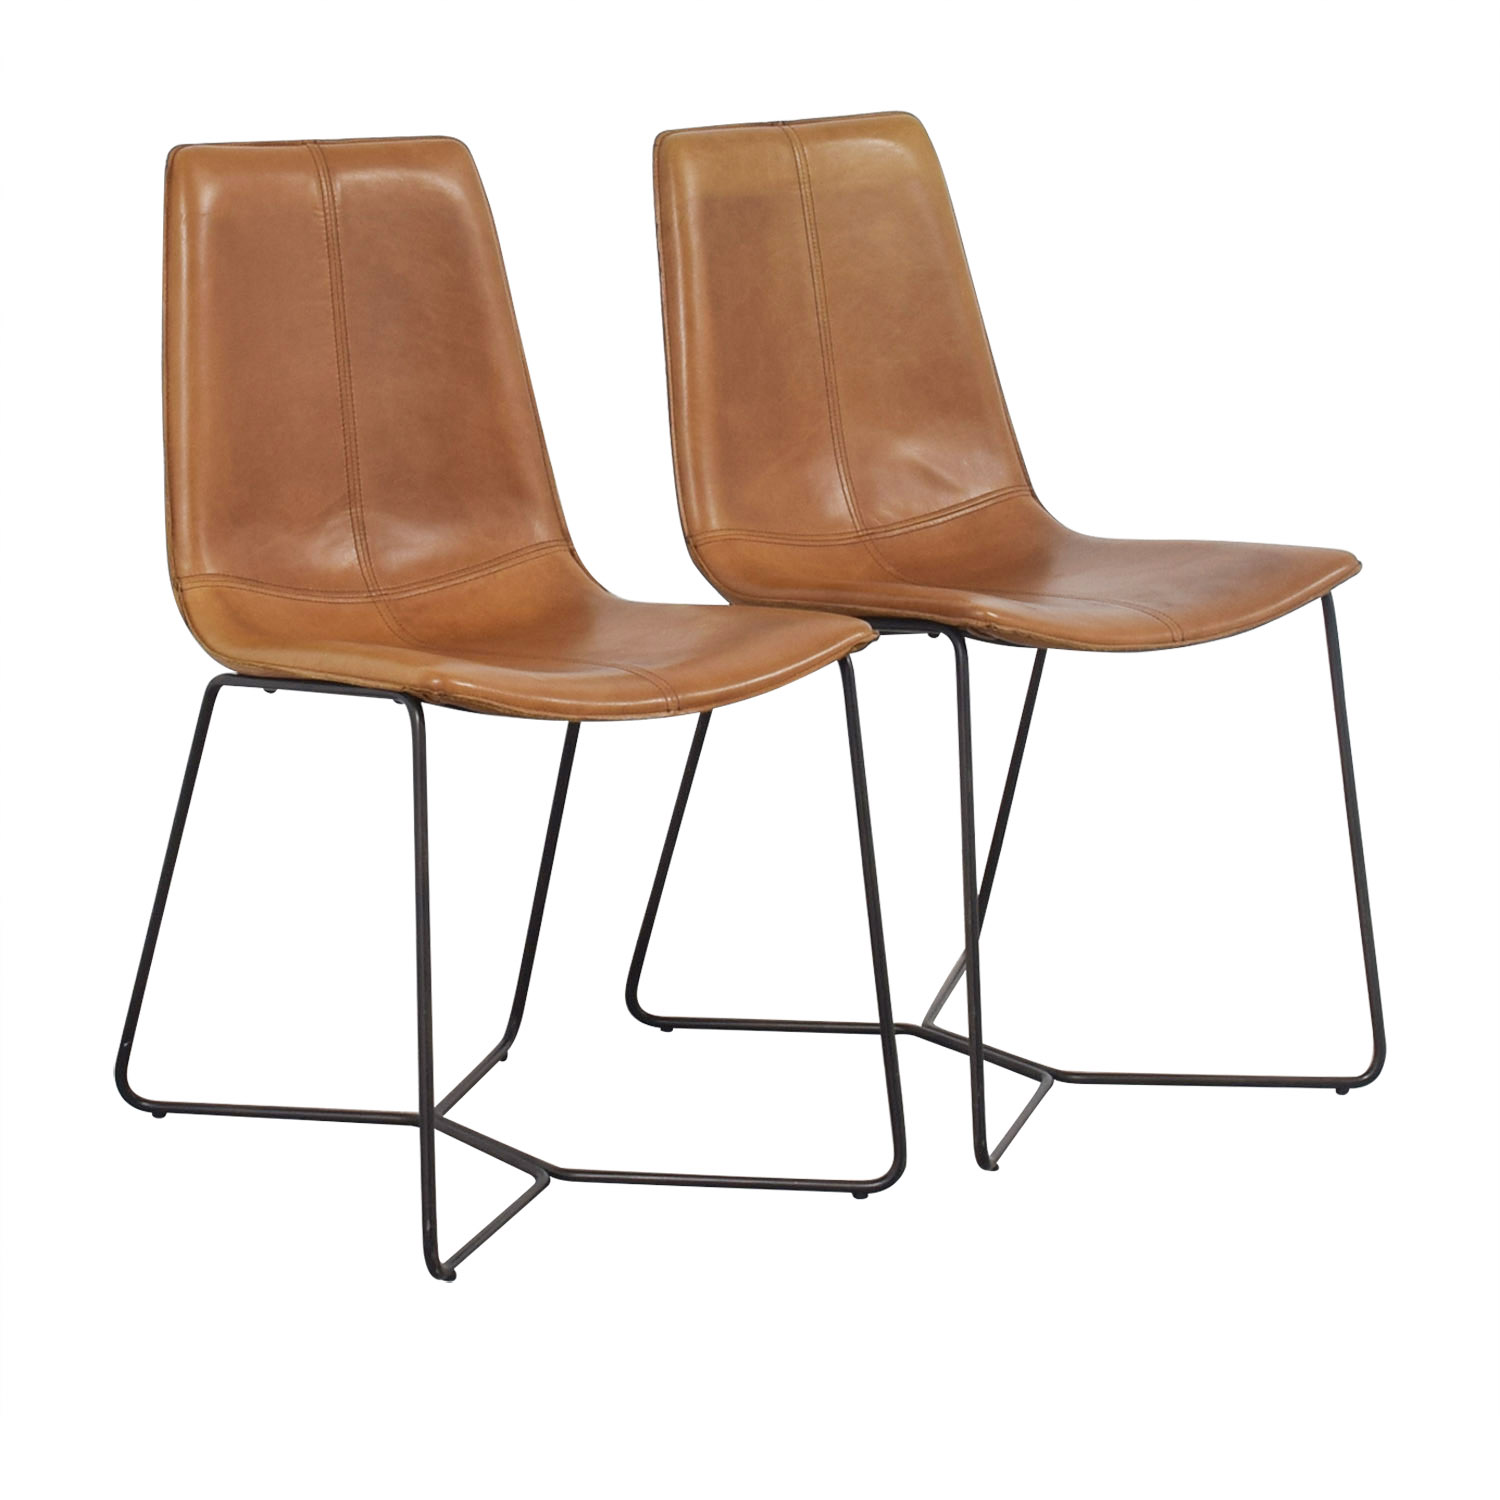 west elm chairs dining kd smart chair manual 46 off leather slope